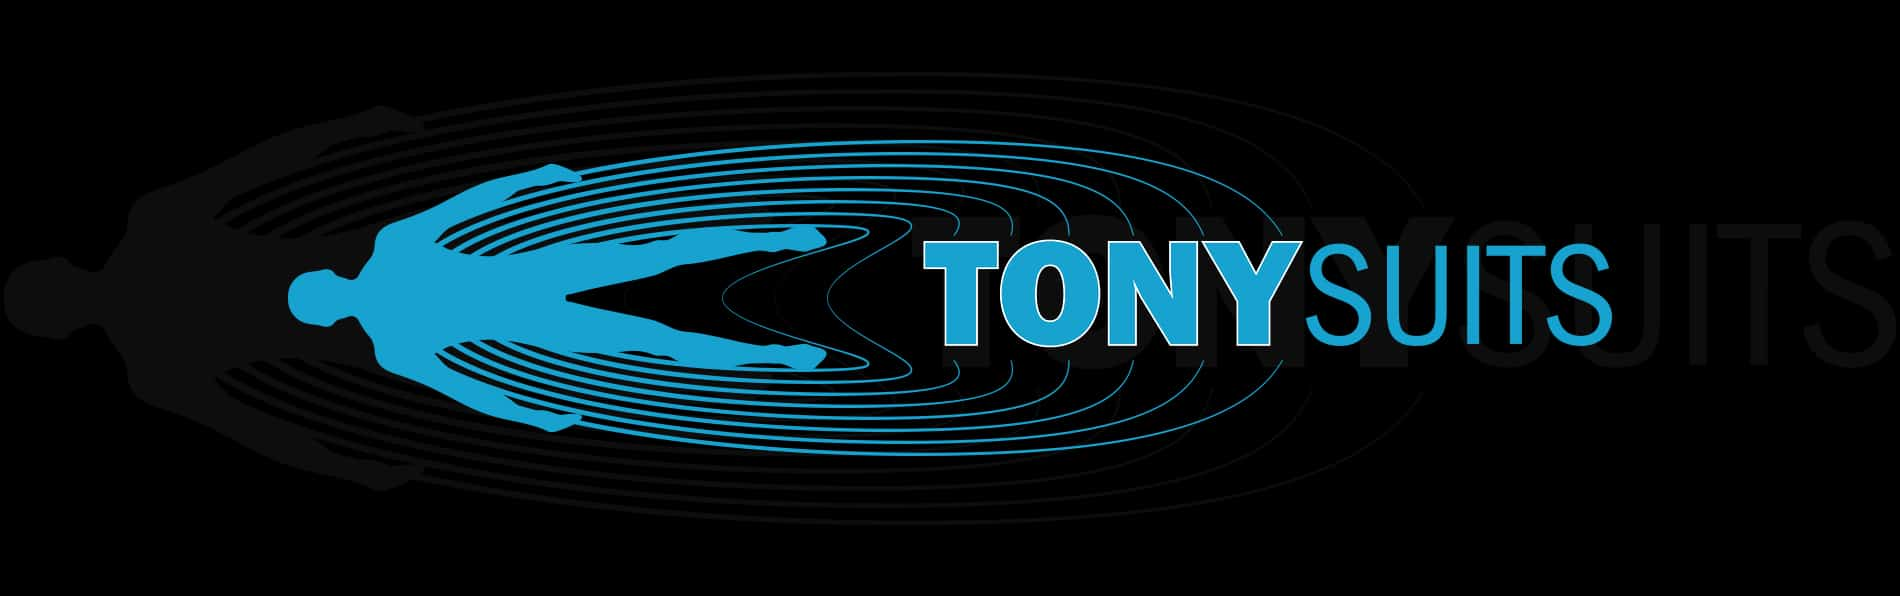 tony suits banner